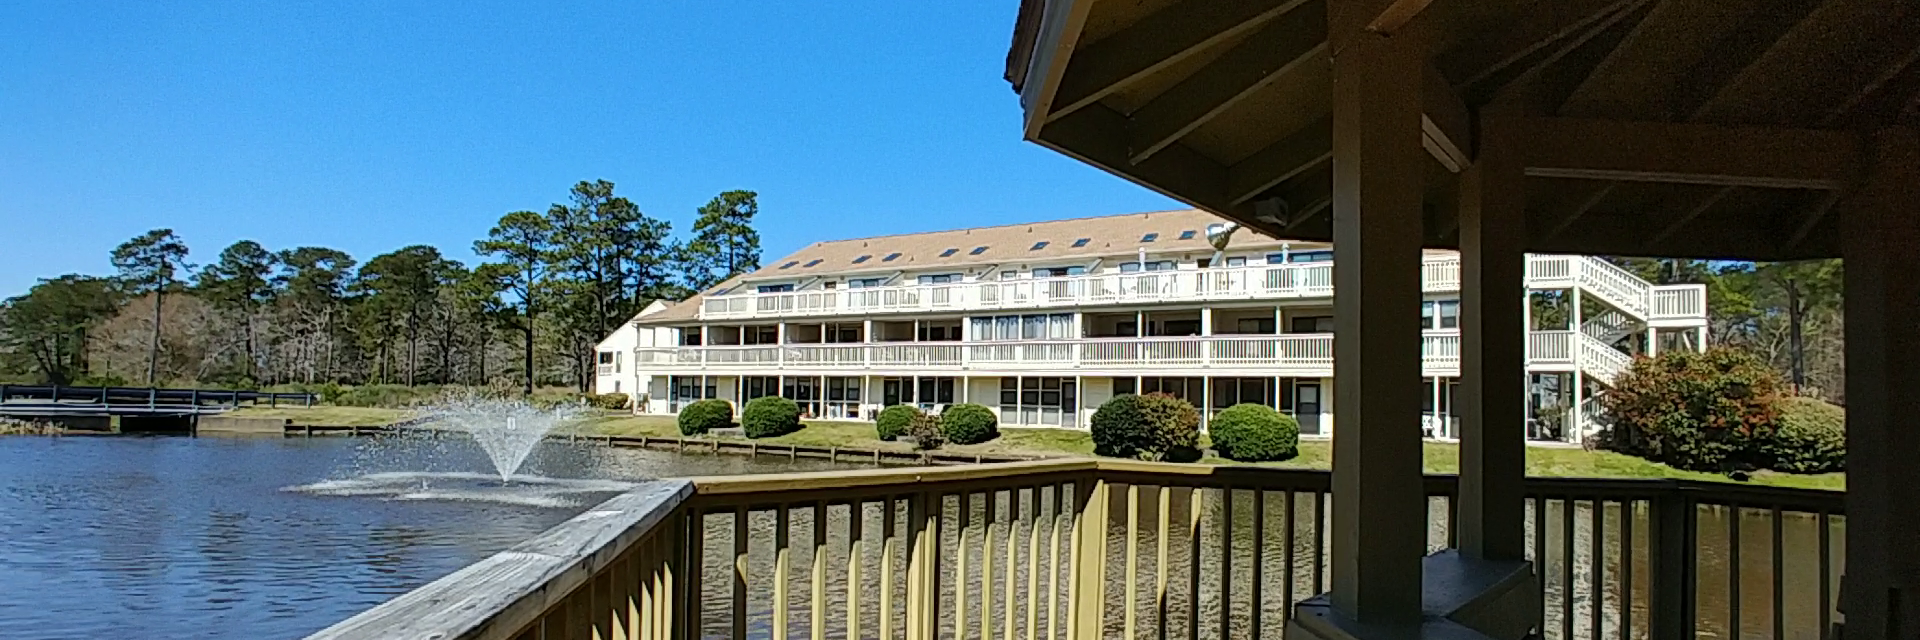 Lake View Condos Fairwood Lakes in Island Green Myrtle Beach SC